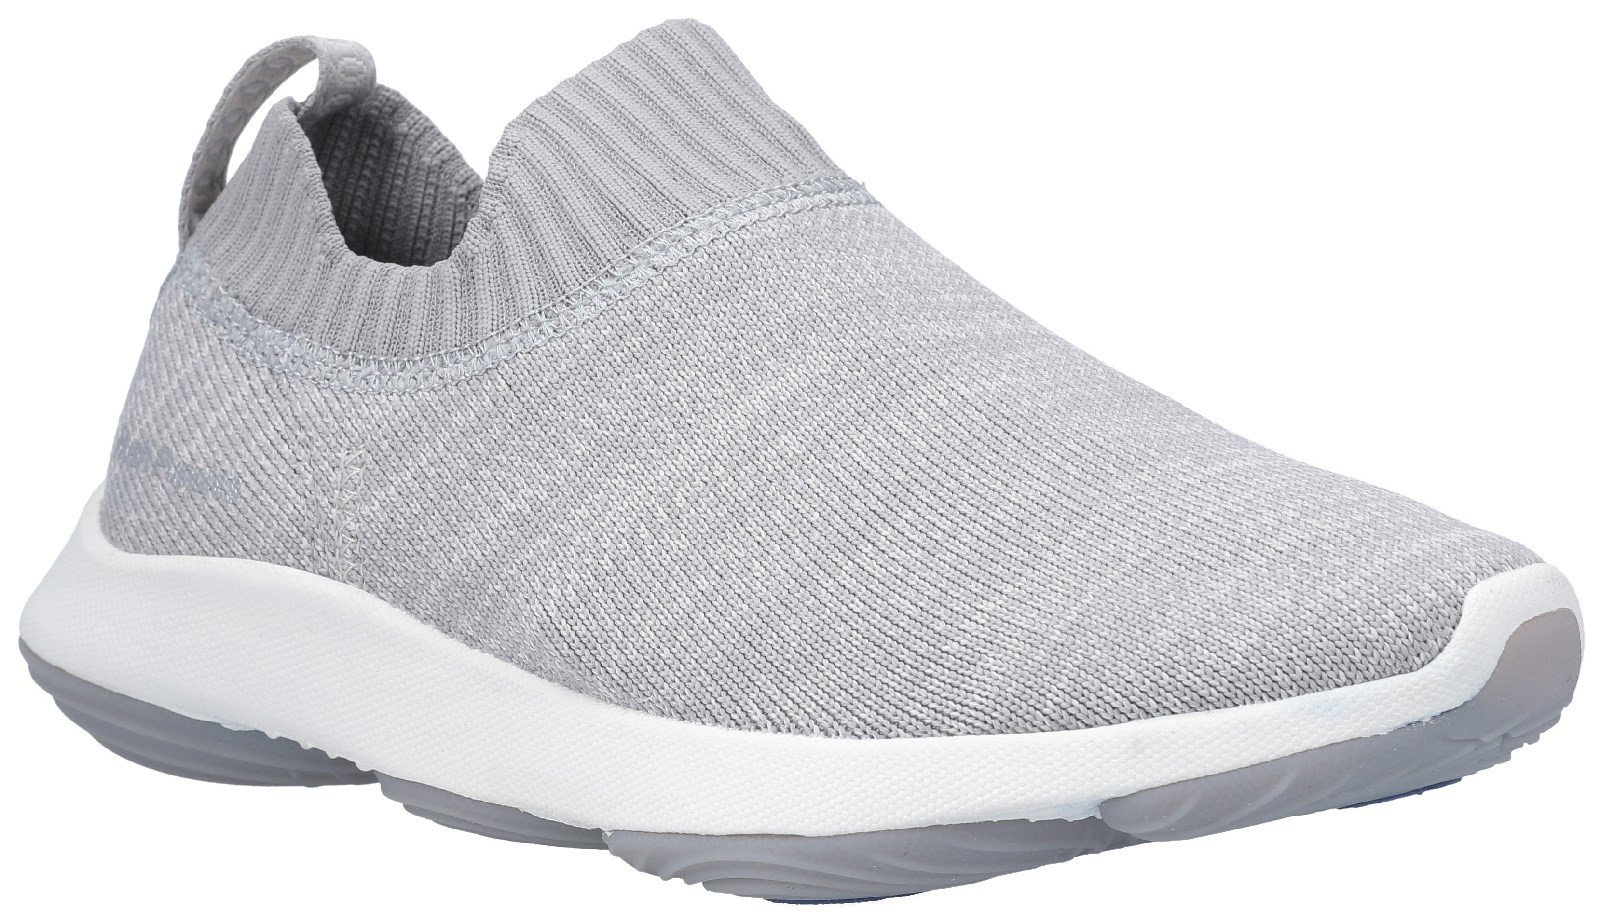 Hush Puppies Men's Free BounceMAX Slip On Trainer Various Colours 29240 - Cool grey 3